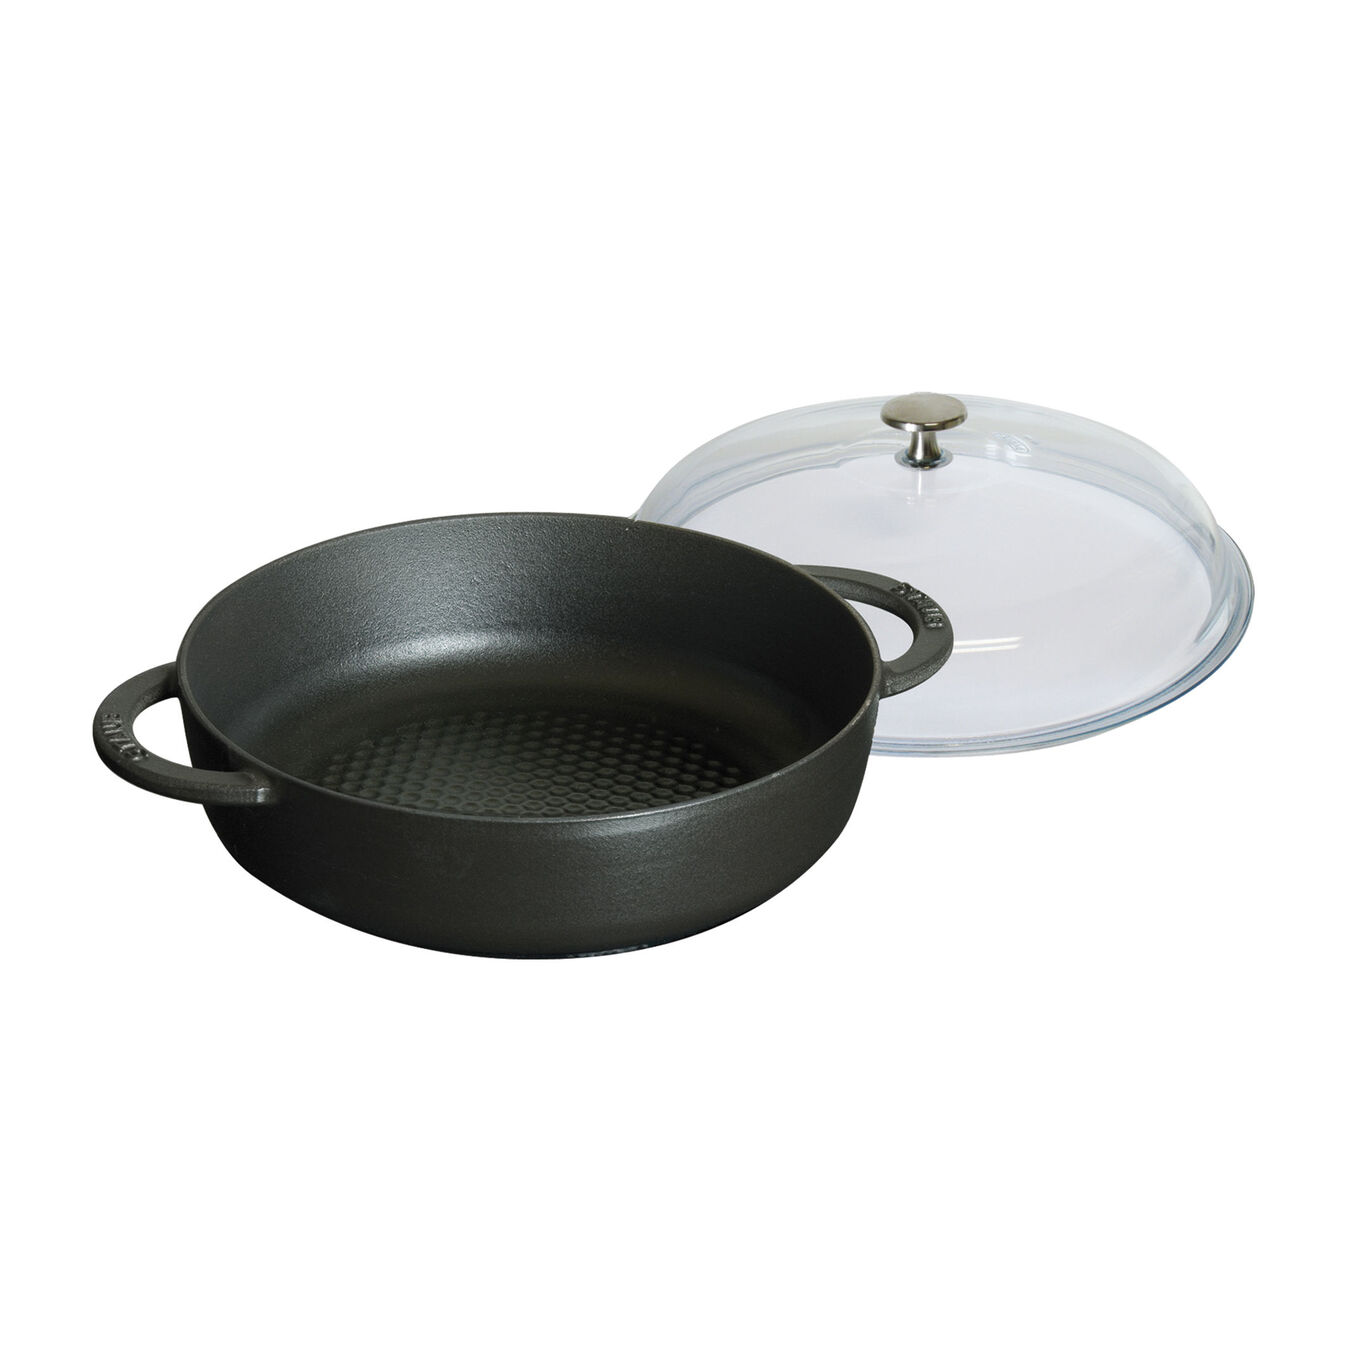 Sauteuse with glass lid 28 cm,,large 2